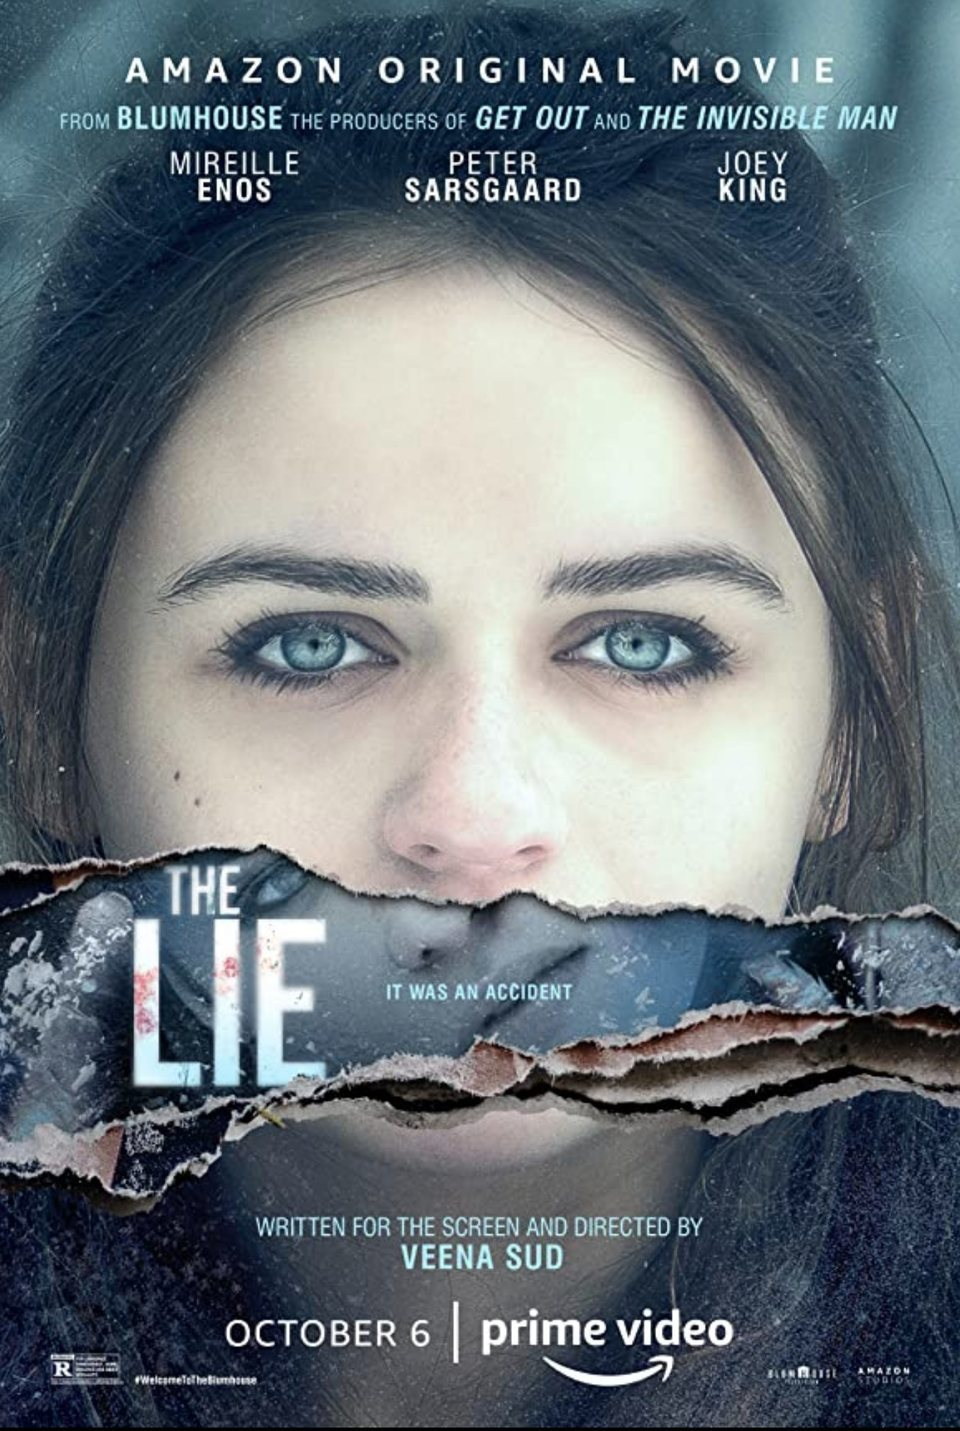 EE.UU. poster for The Lie